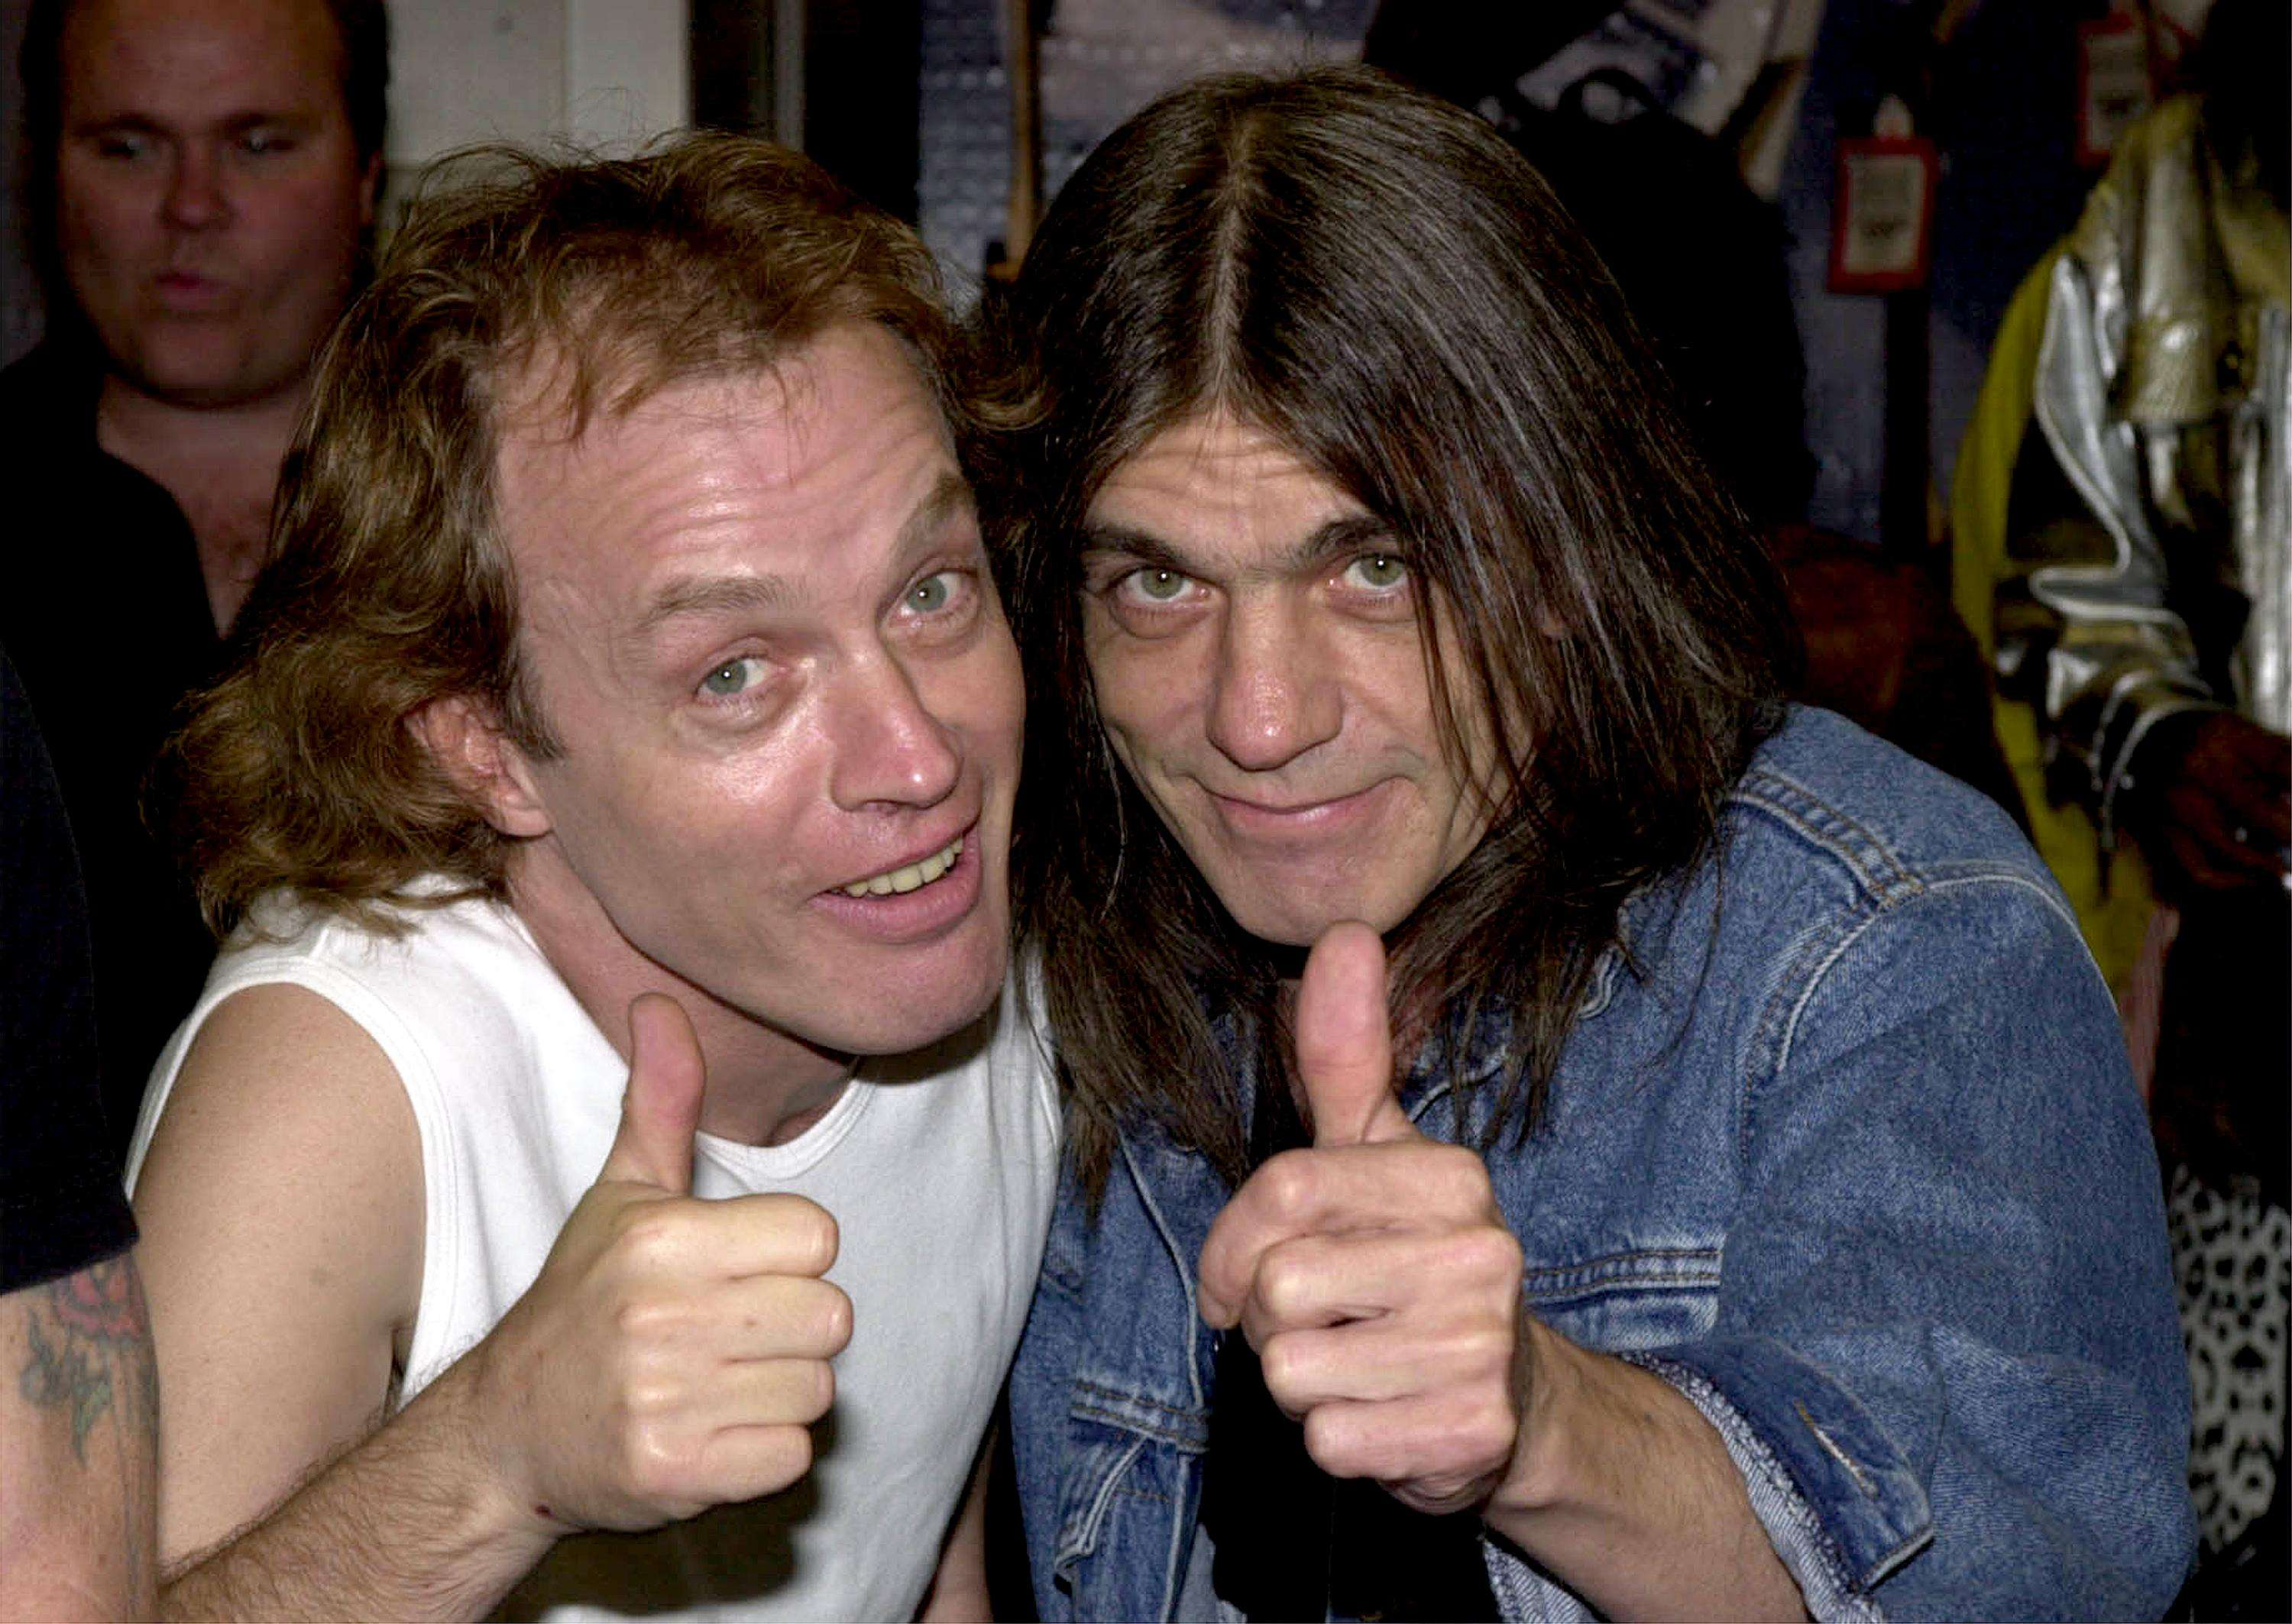 AC/DC confirma doença e pausa do guitarrista Malcolm Young